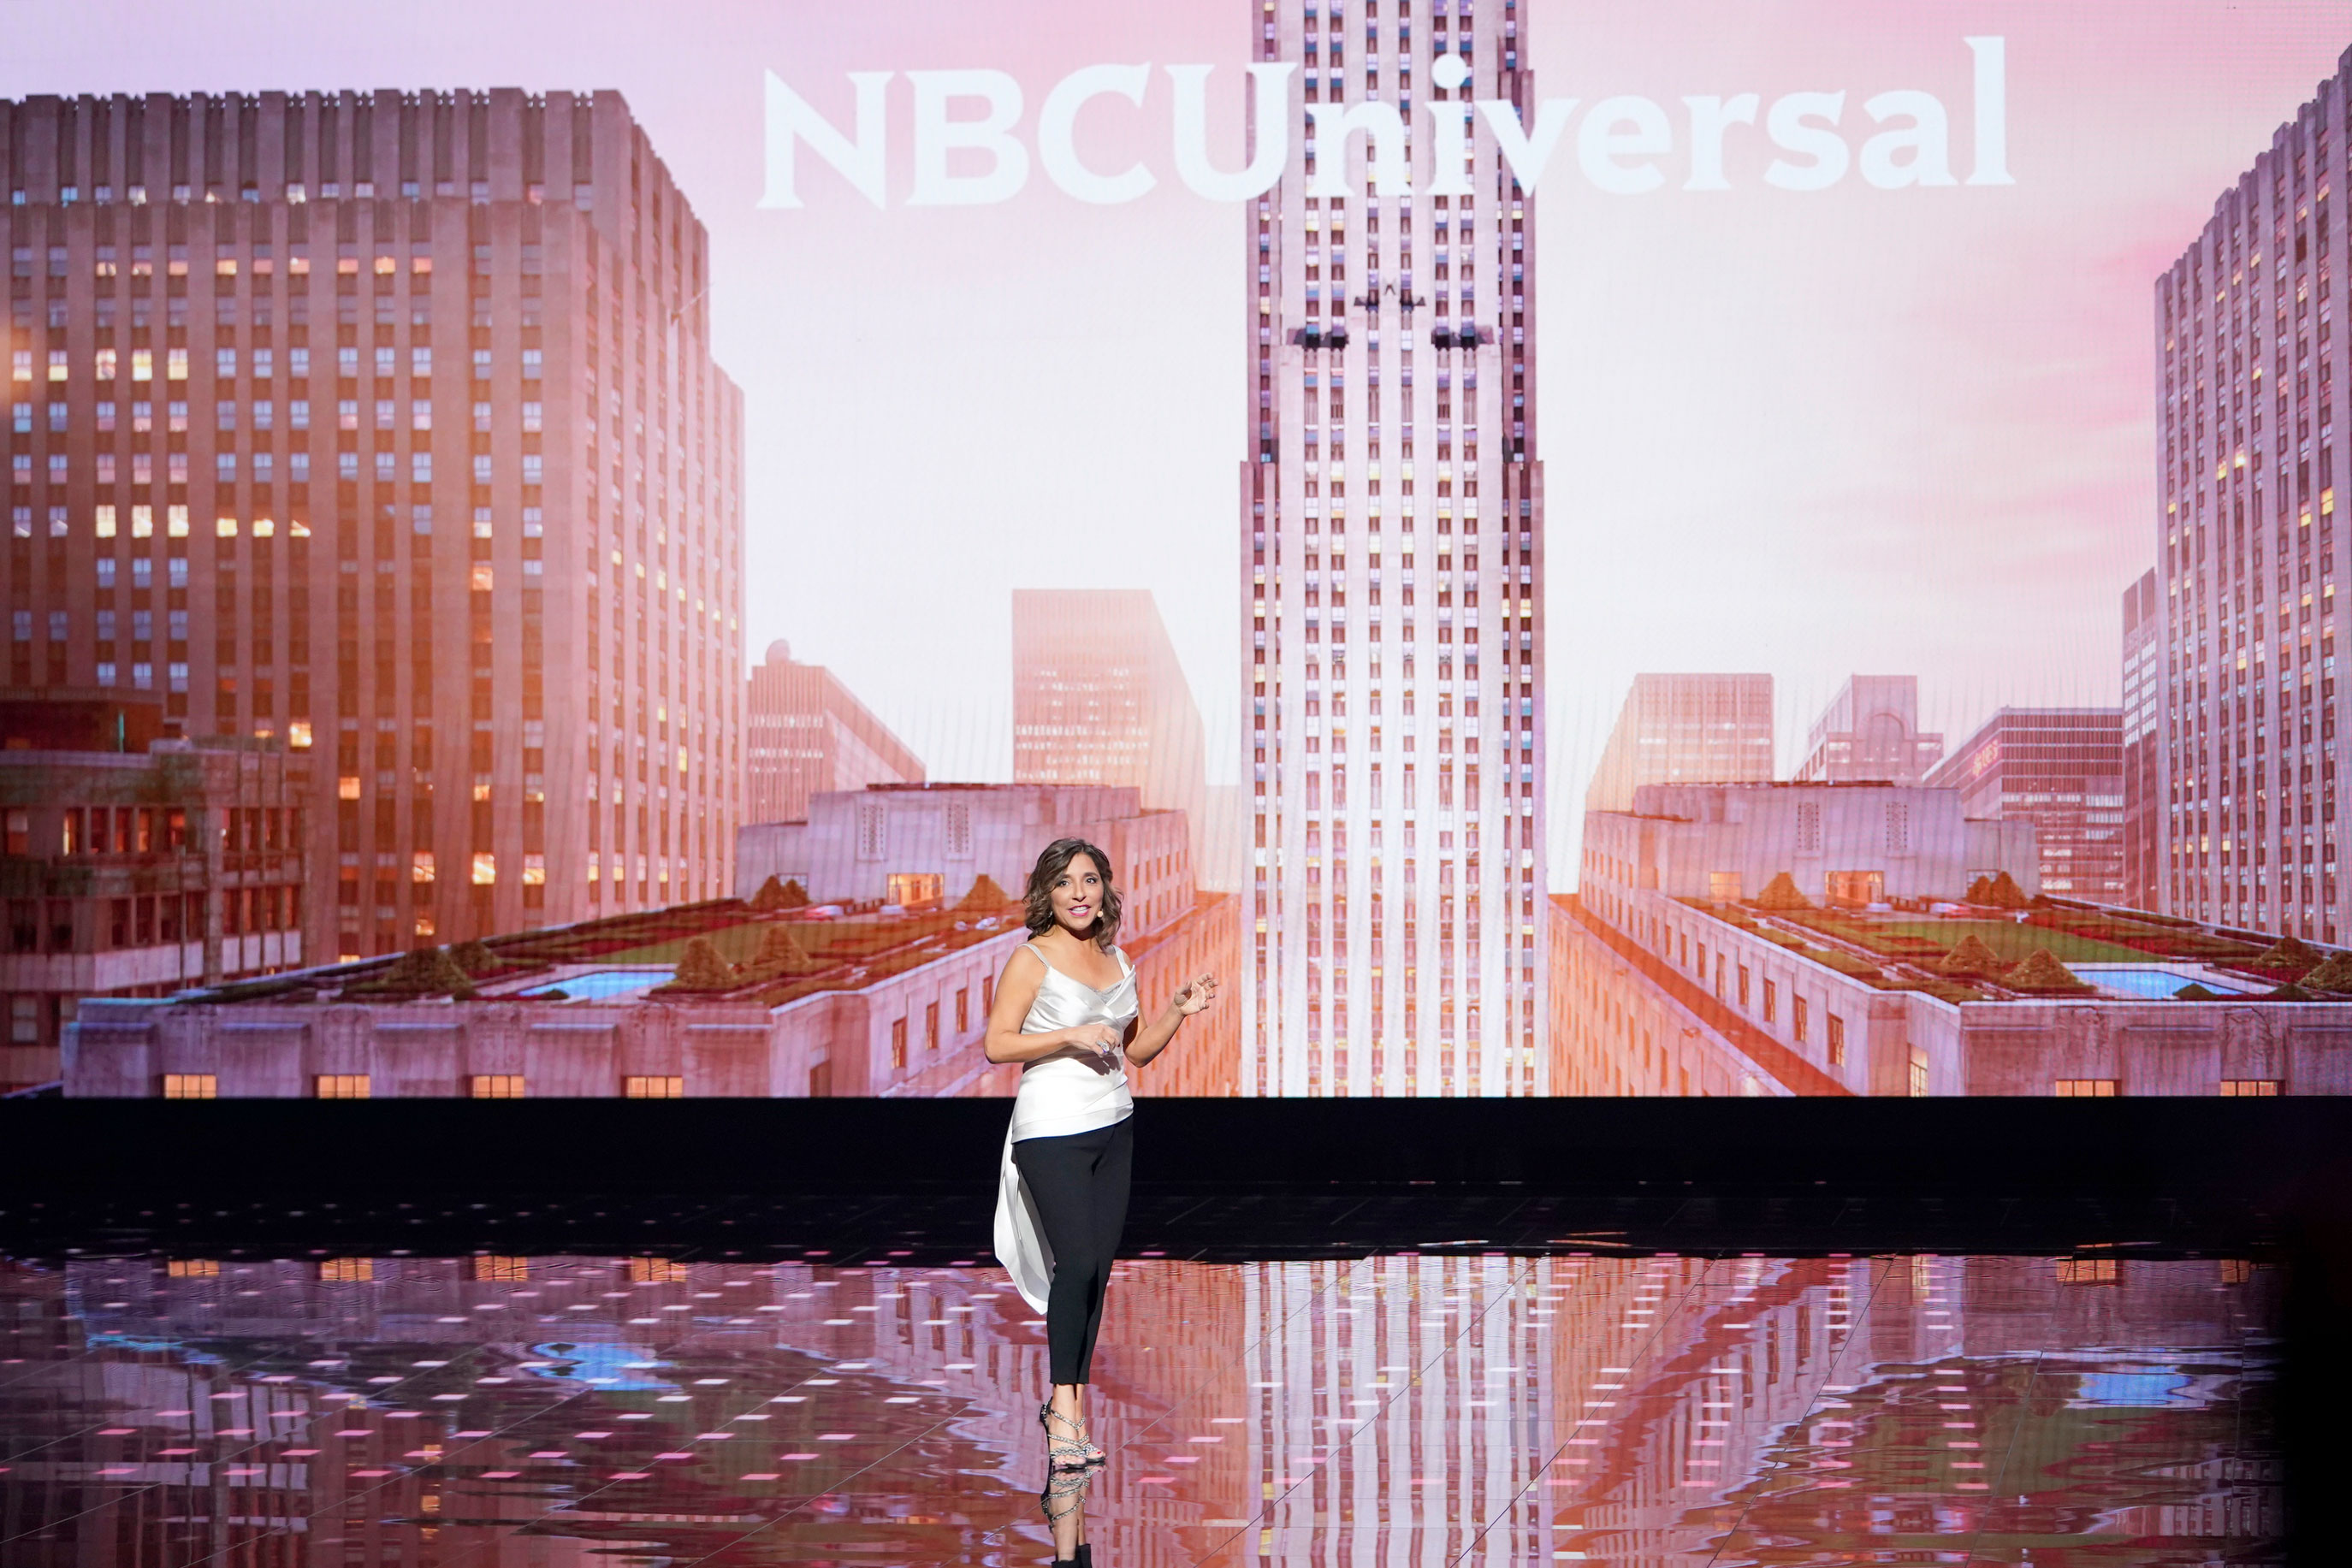 NBC's upfront teeters between streaming future and broadcast past